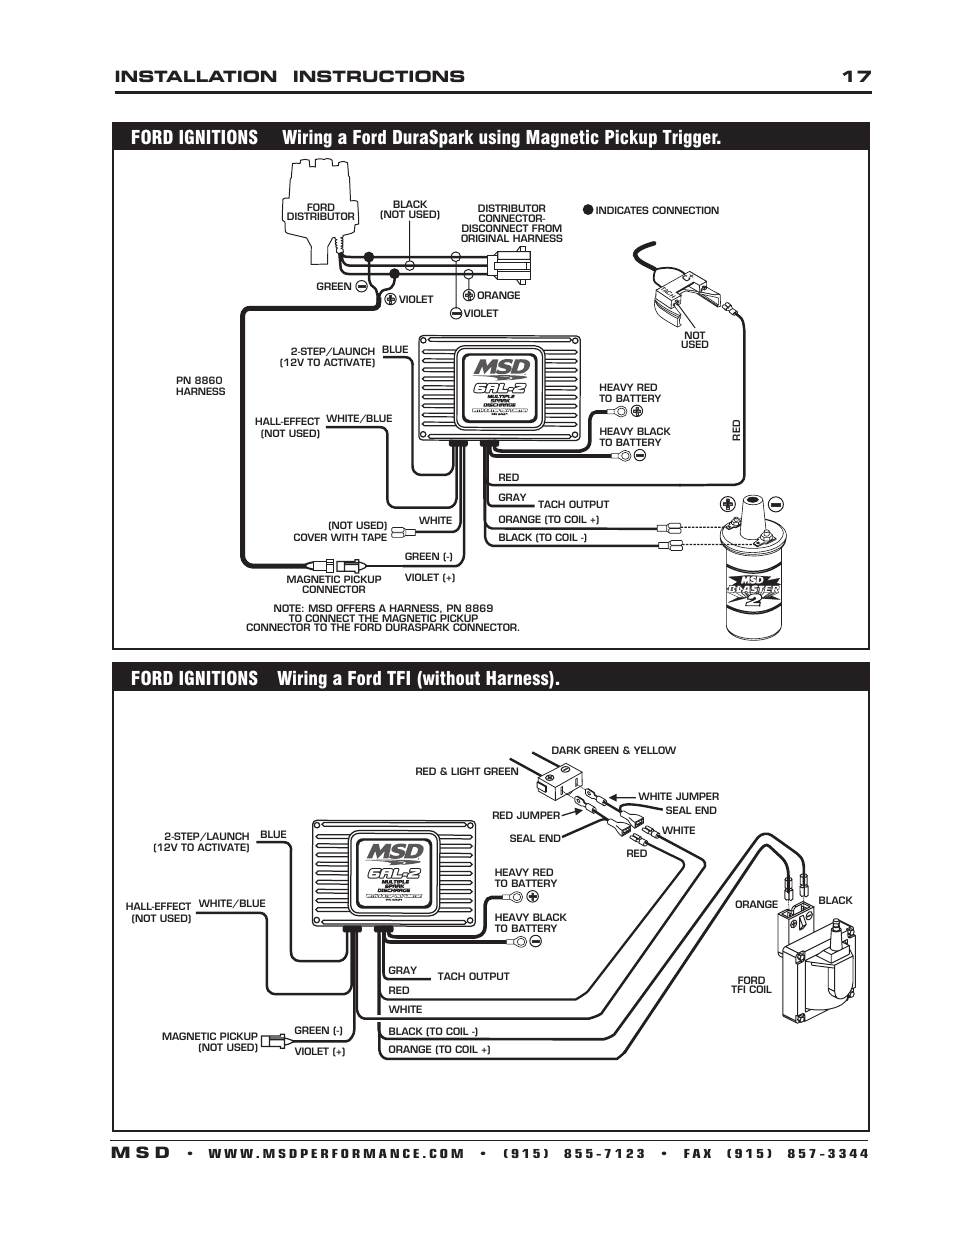 Old Fashioned Msd 7al Wiring Diagram Picture Collection - Best ...